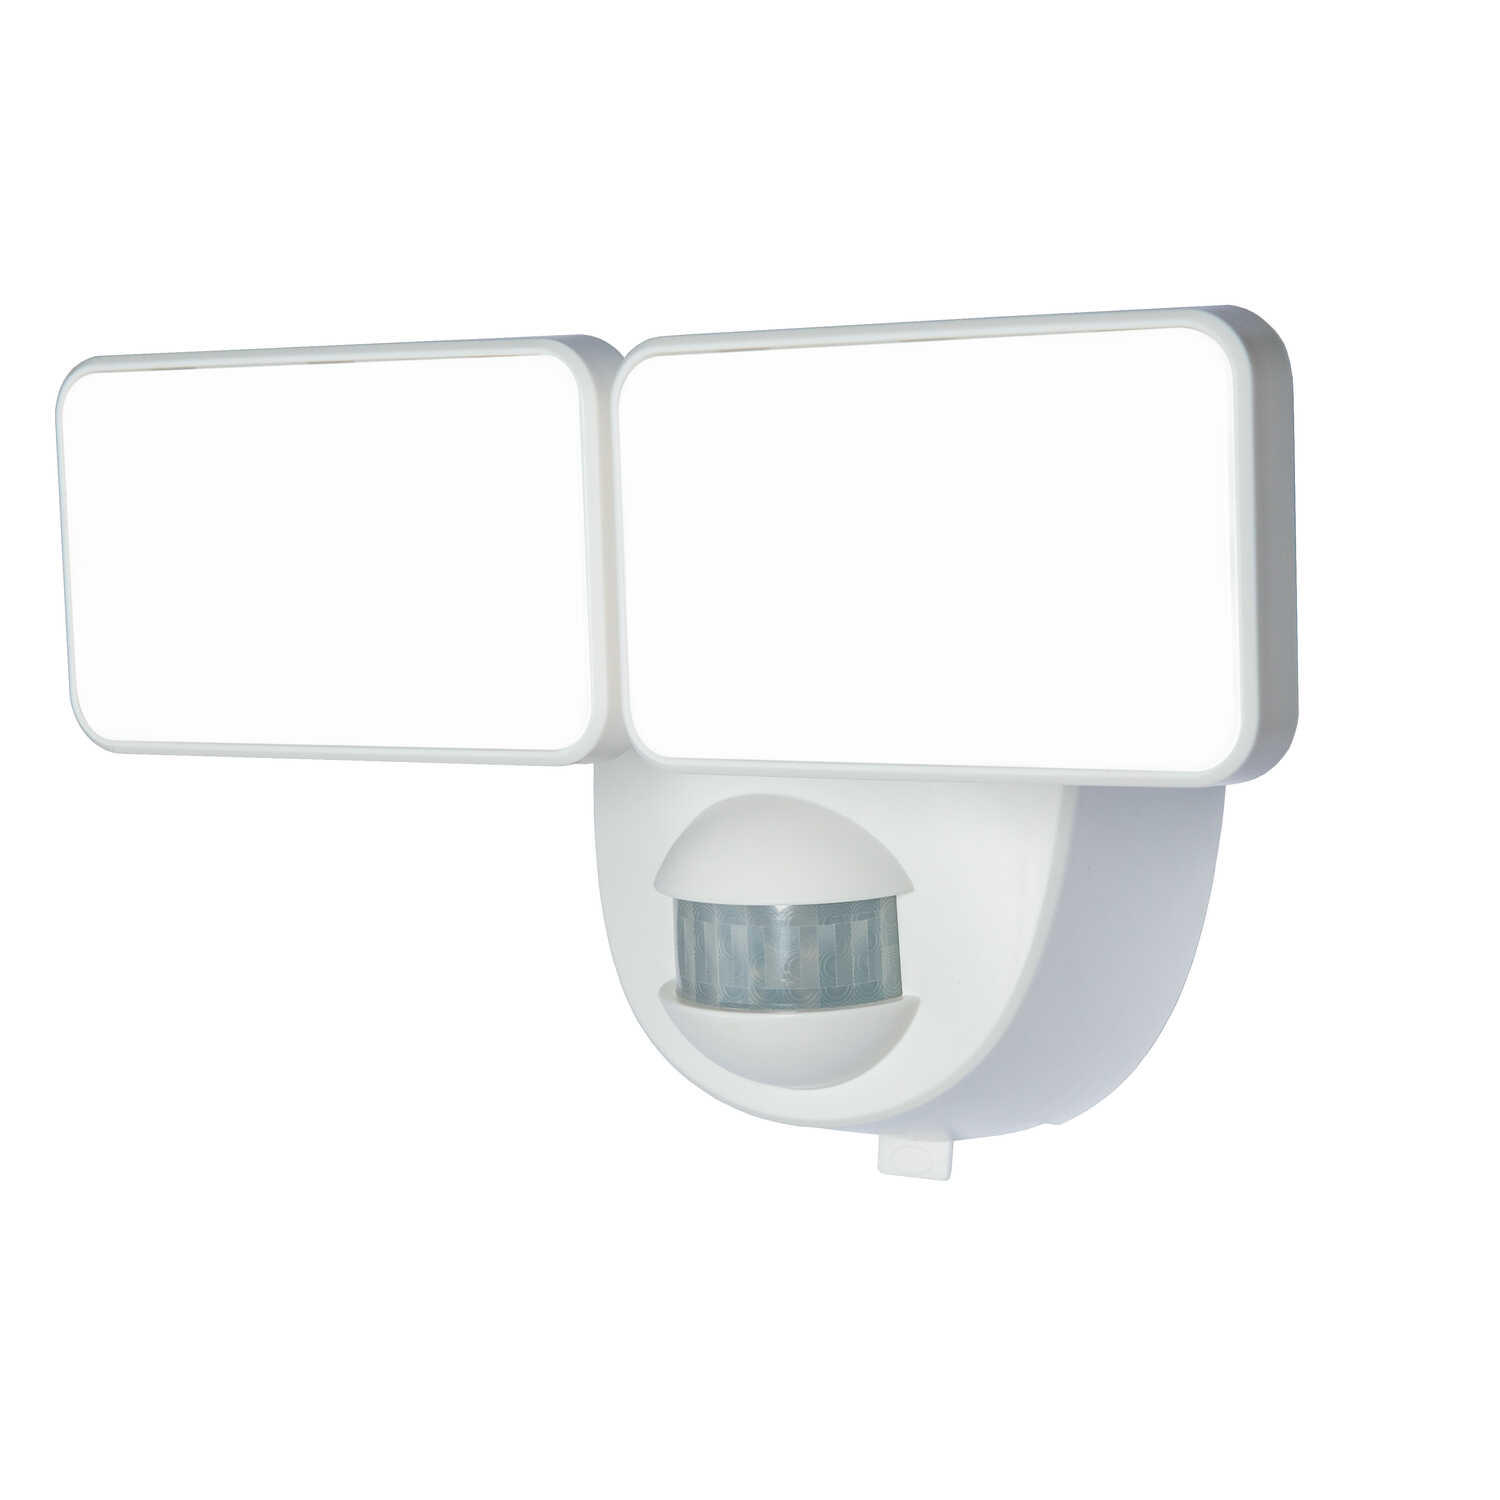 Heath Zenith  Motion-Sensing  Battery Powered  LED  White  Security Wall Light